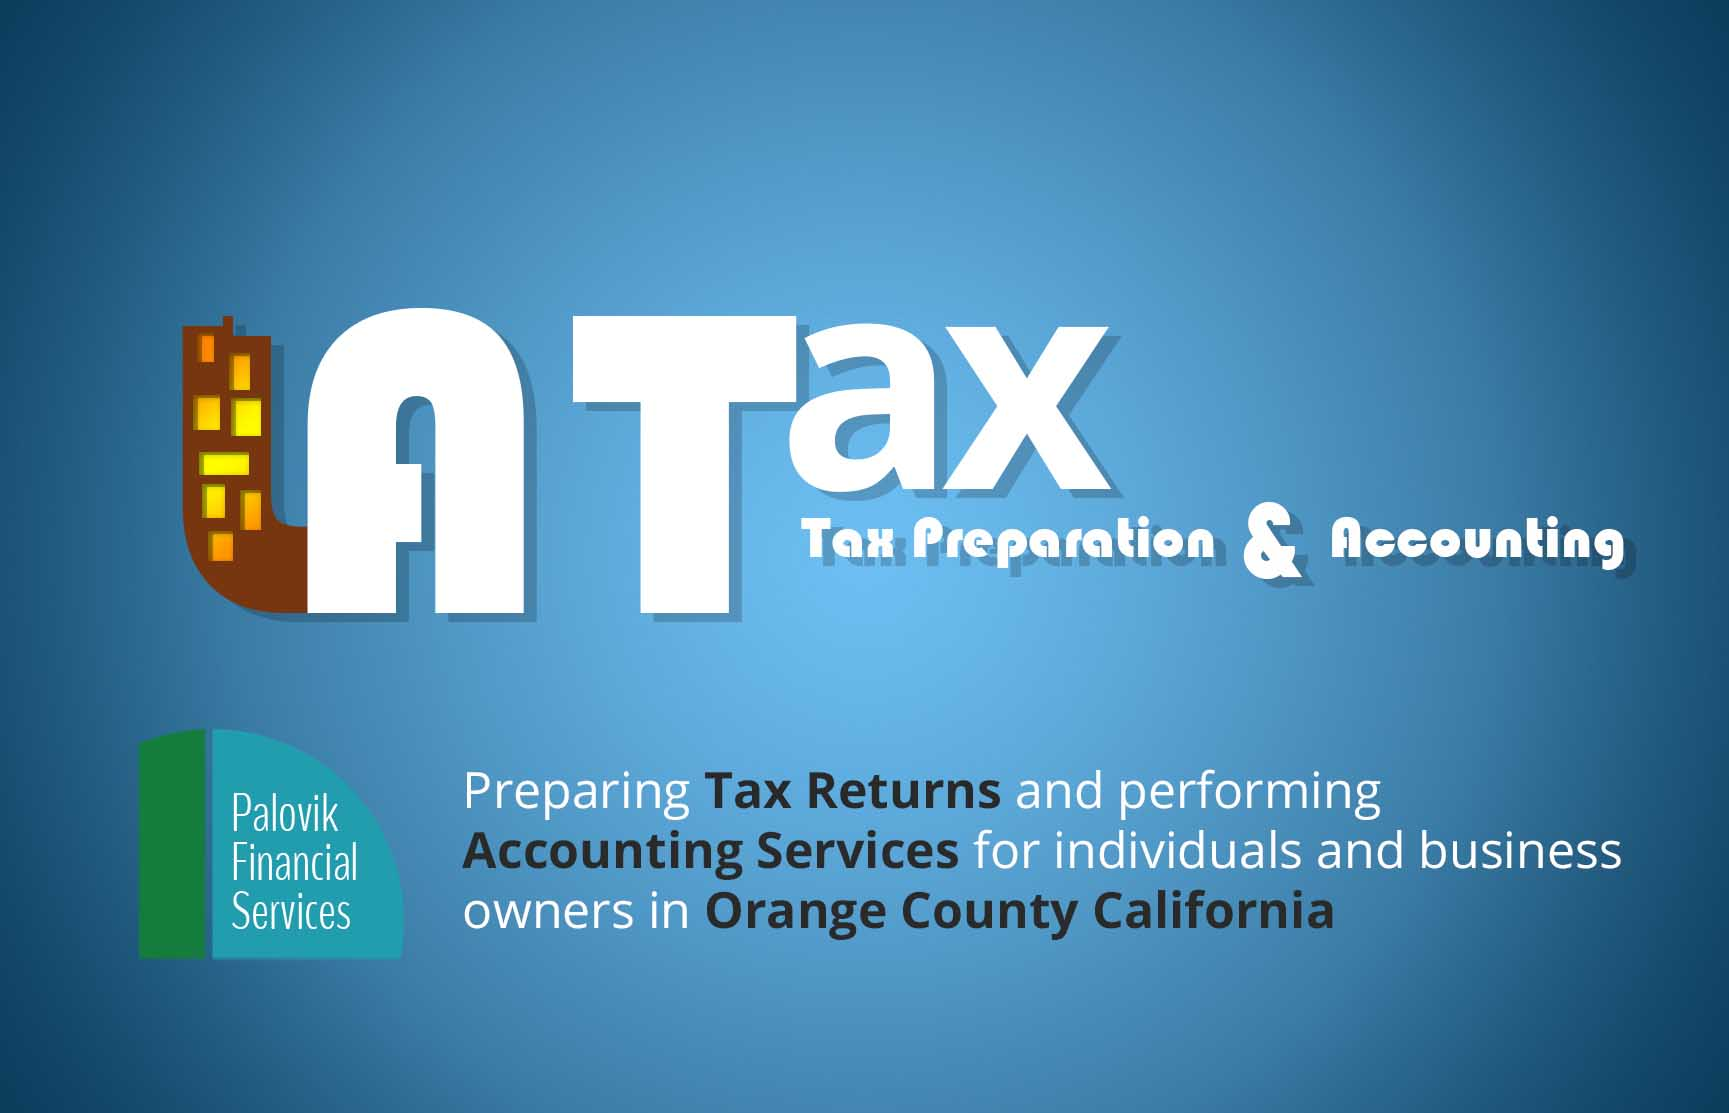 Los Angeles Tax Preparers